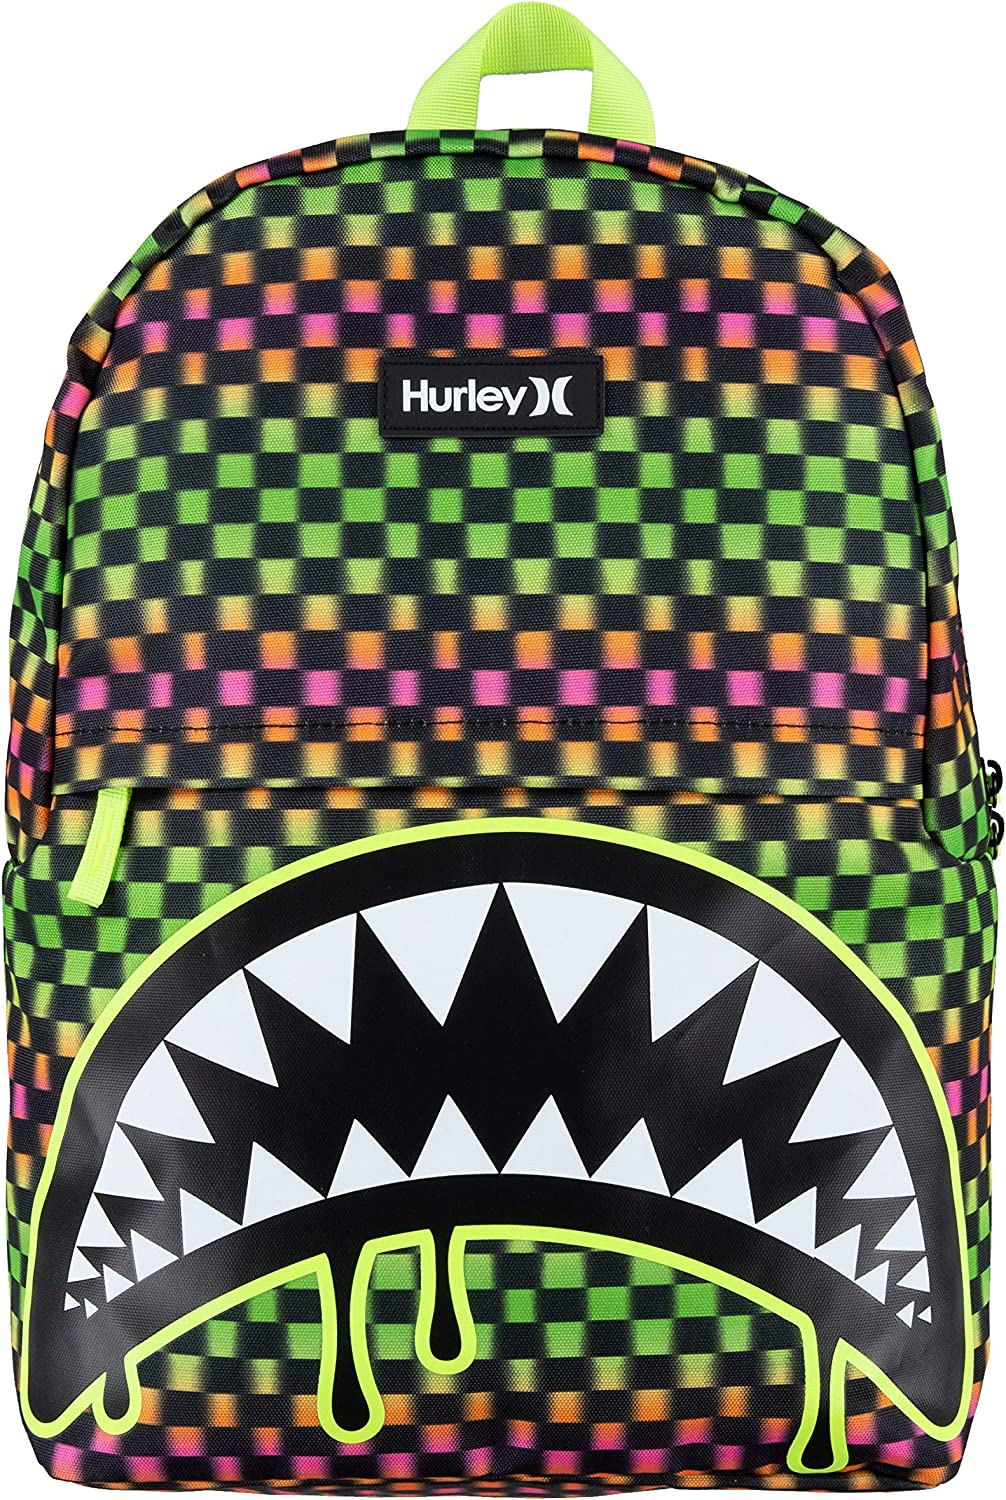 Max 71% OFF Hurley Kids' One and Only Max 54% OFF Bite Backpack Green Large Shark